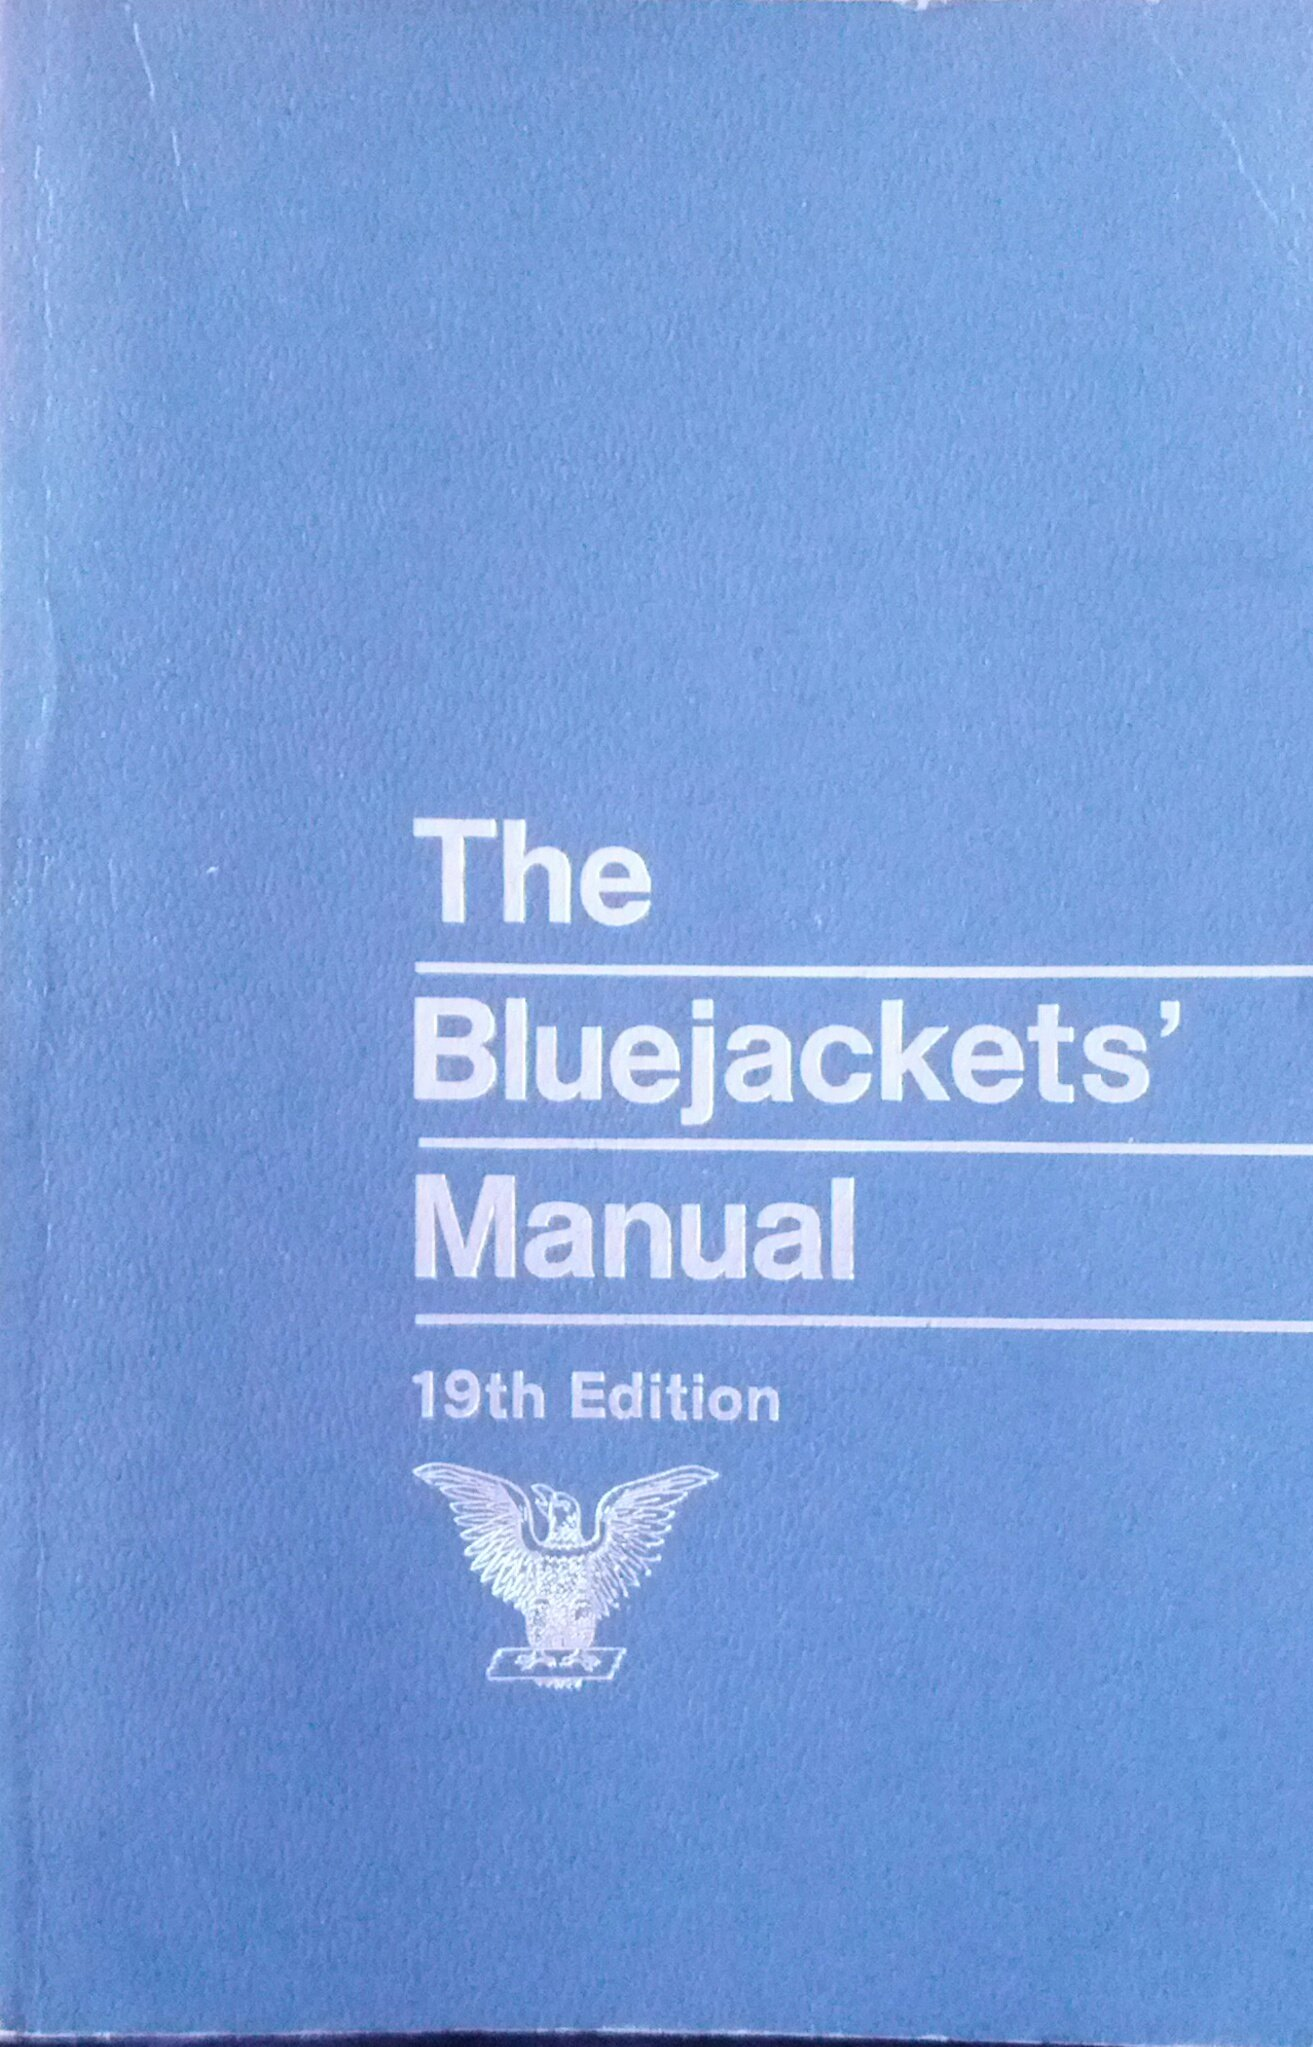 The Bluejackets' Manual, 19th Edition: Naval Institute Press:  9780870211096: Amazon.com: Books